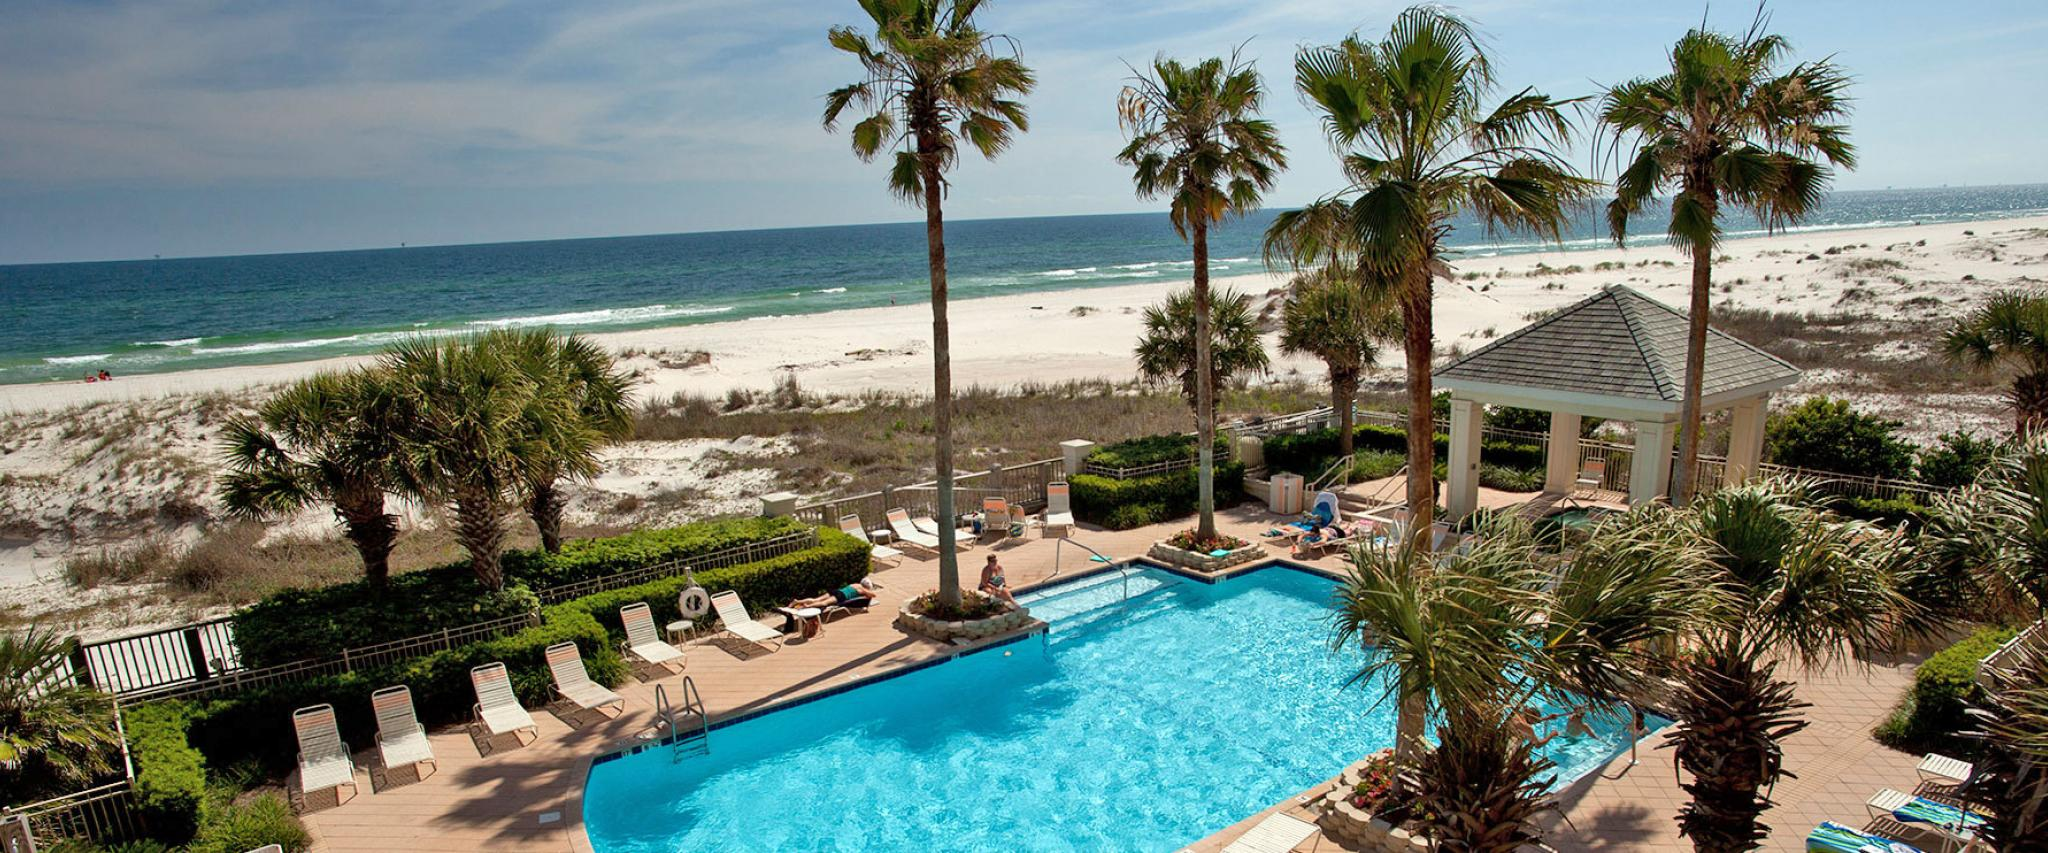 Condo Pool on Alabama's Beaches